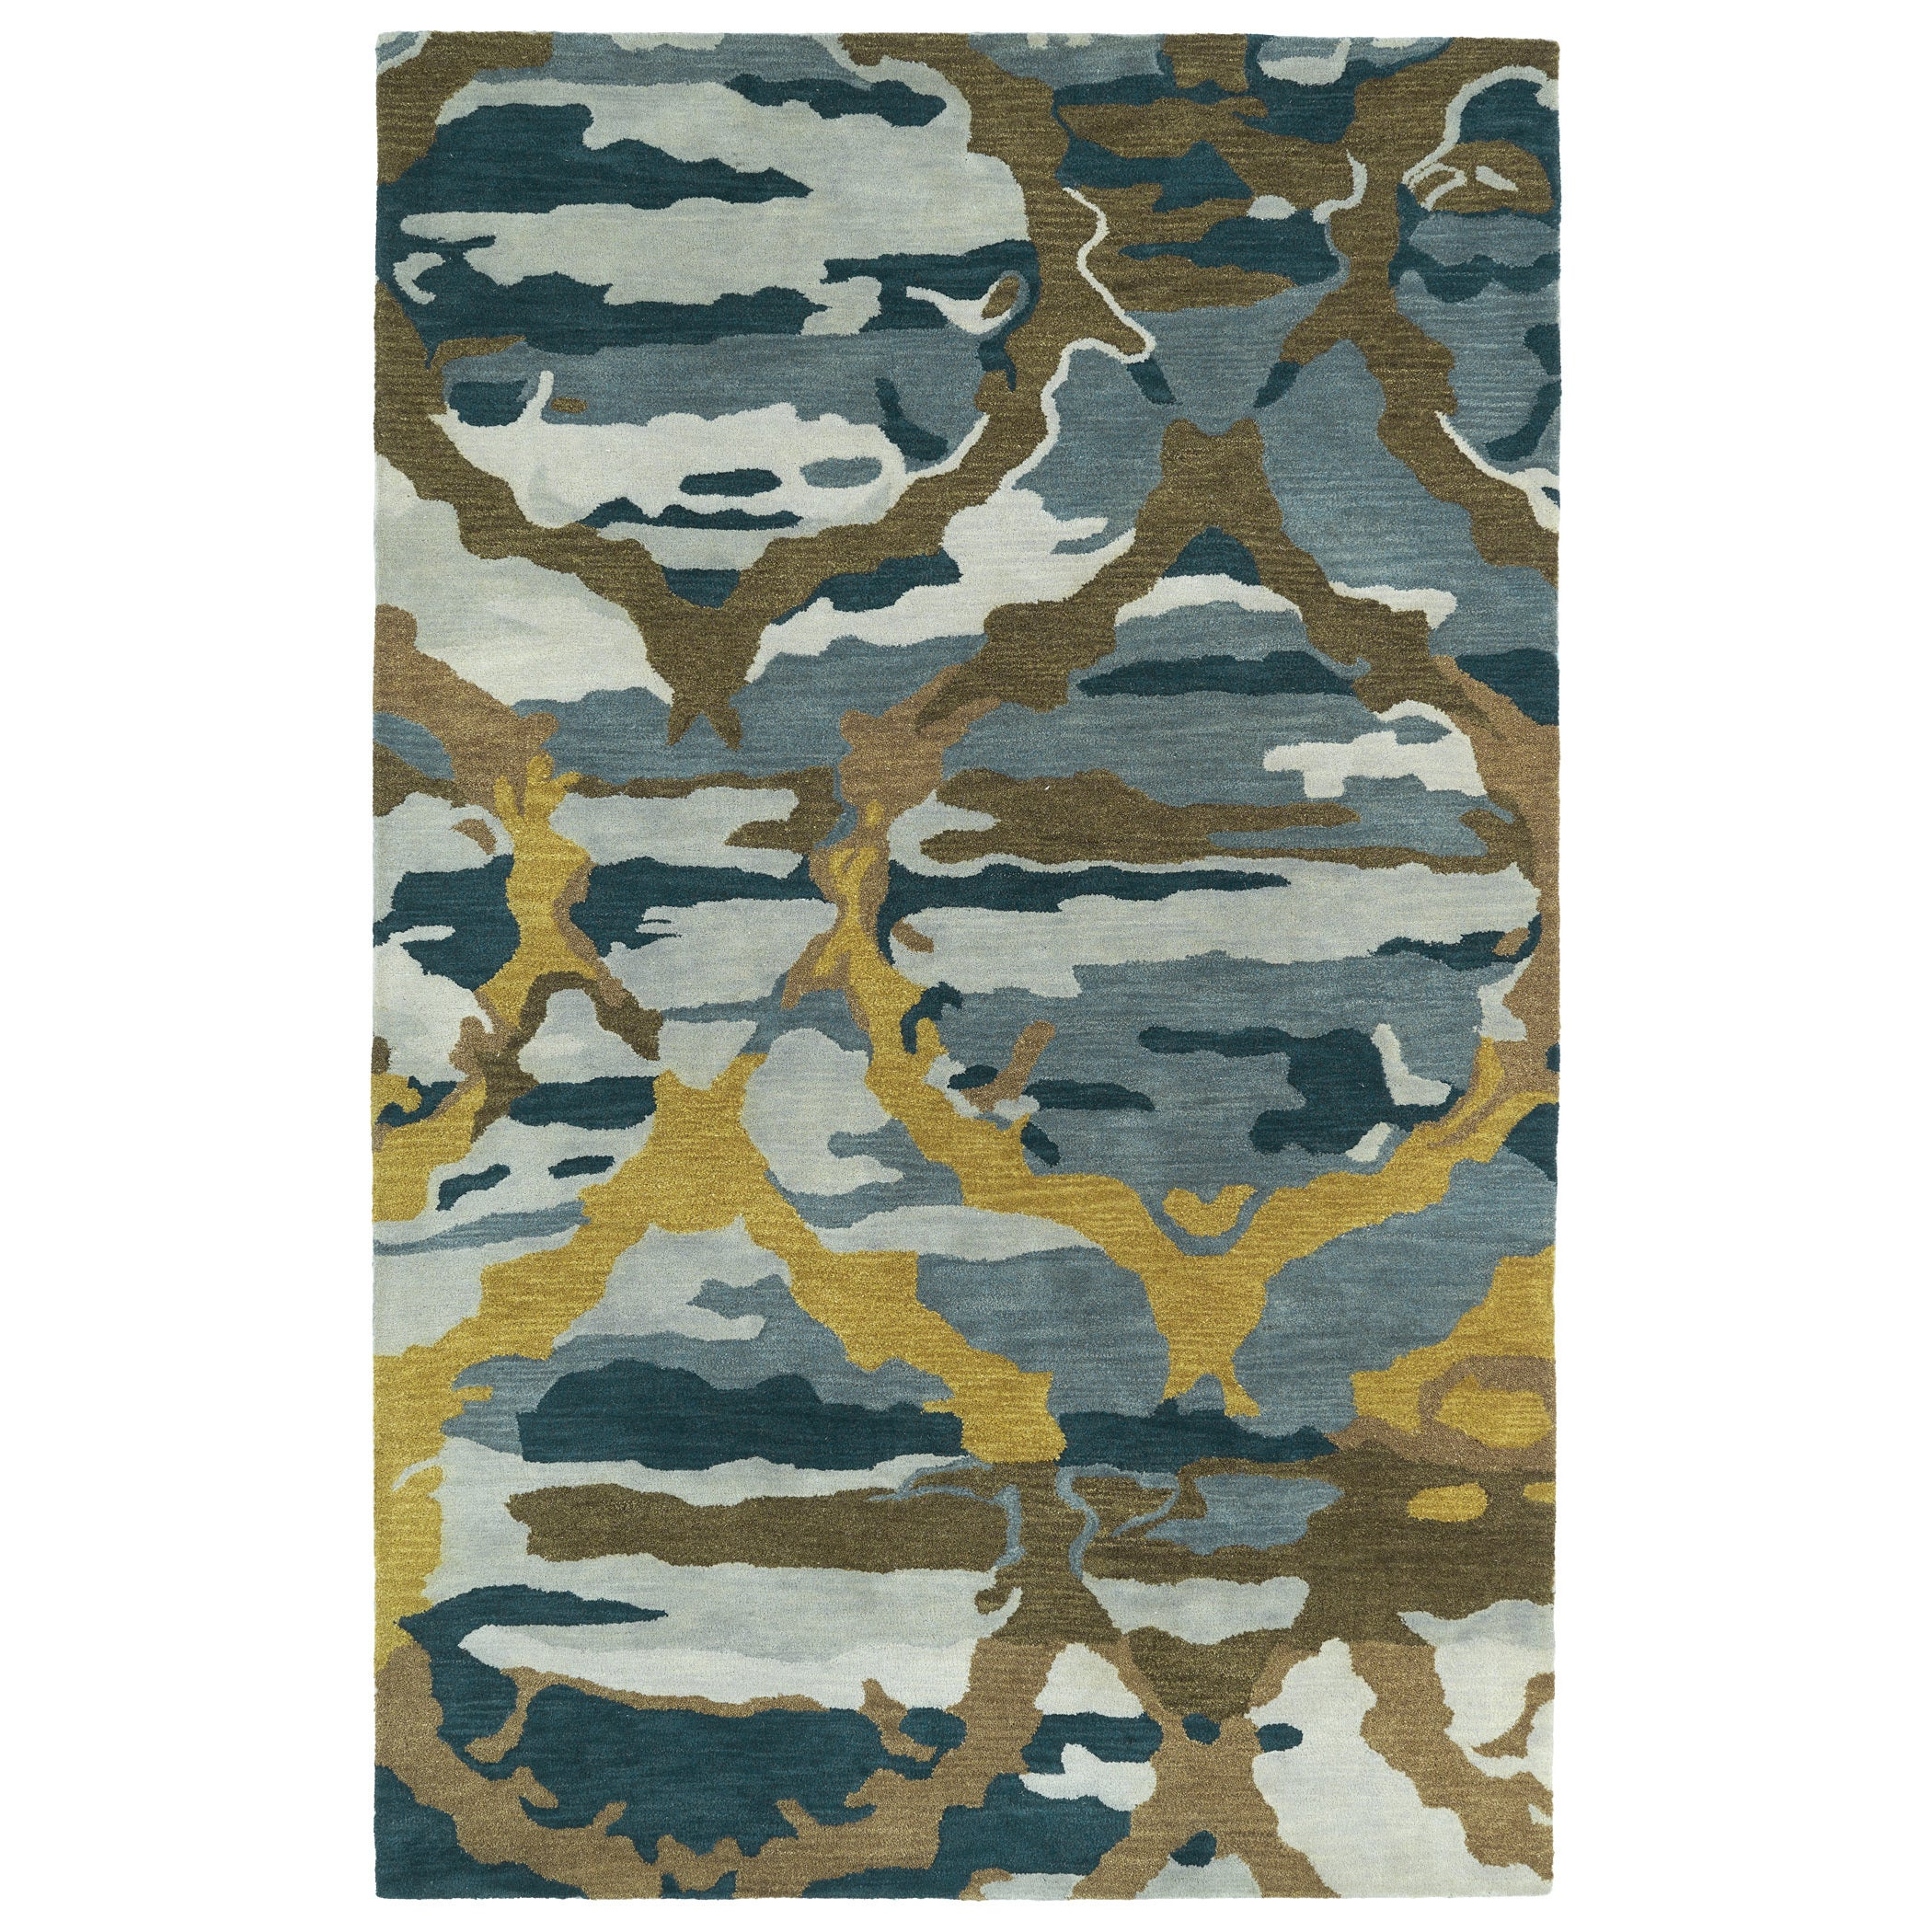 Hand Tufted Artworks Blue Tie Dye Rug 9 6 X 13 Free Shipping Today 16689710